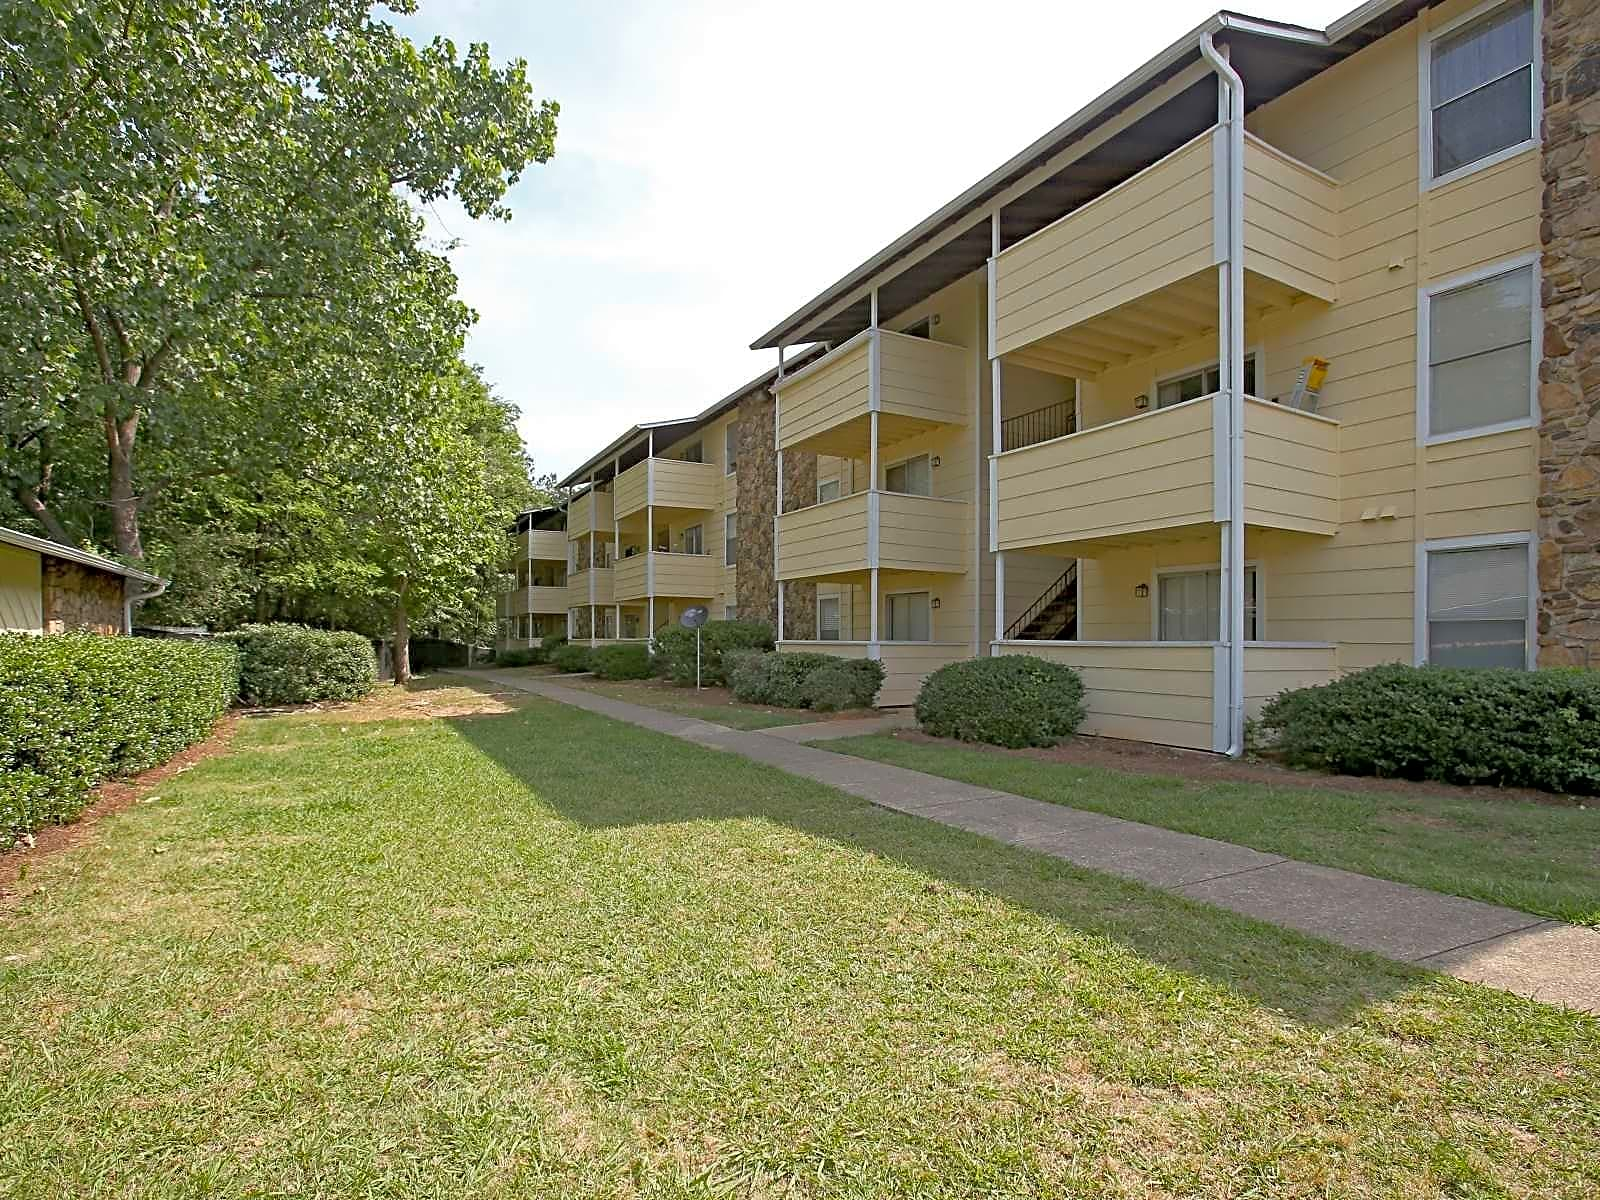 Hoover The Mover >> The Park at Callington & Caryle Apartments - Birmingham ...